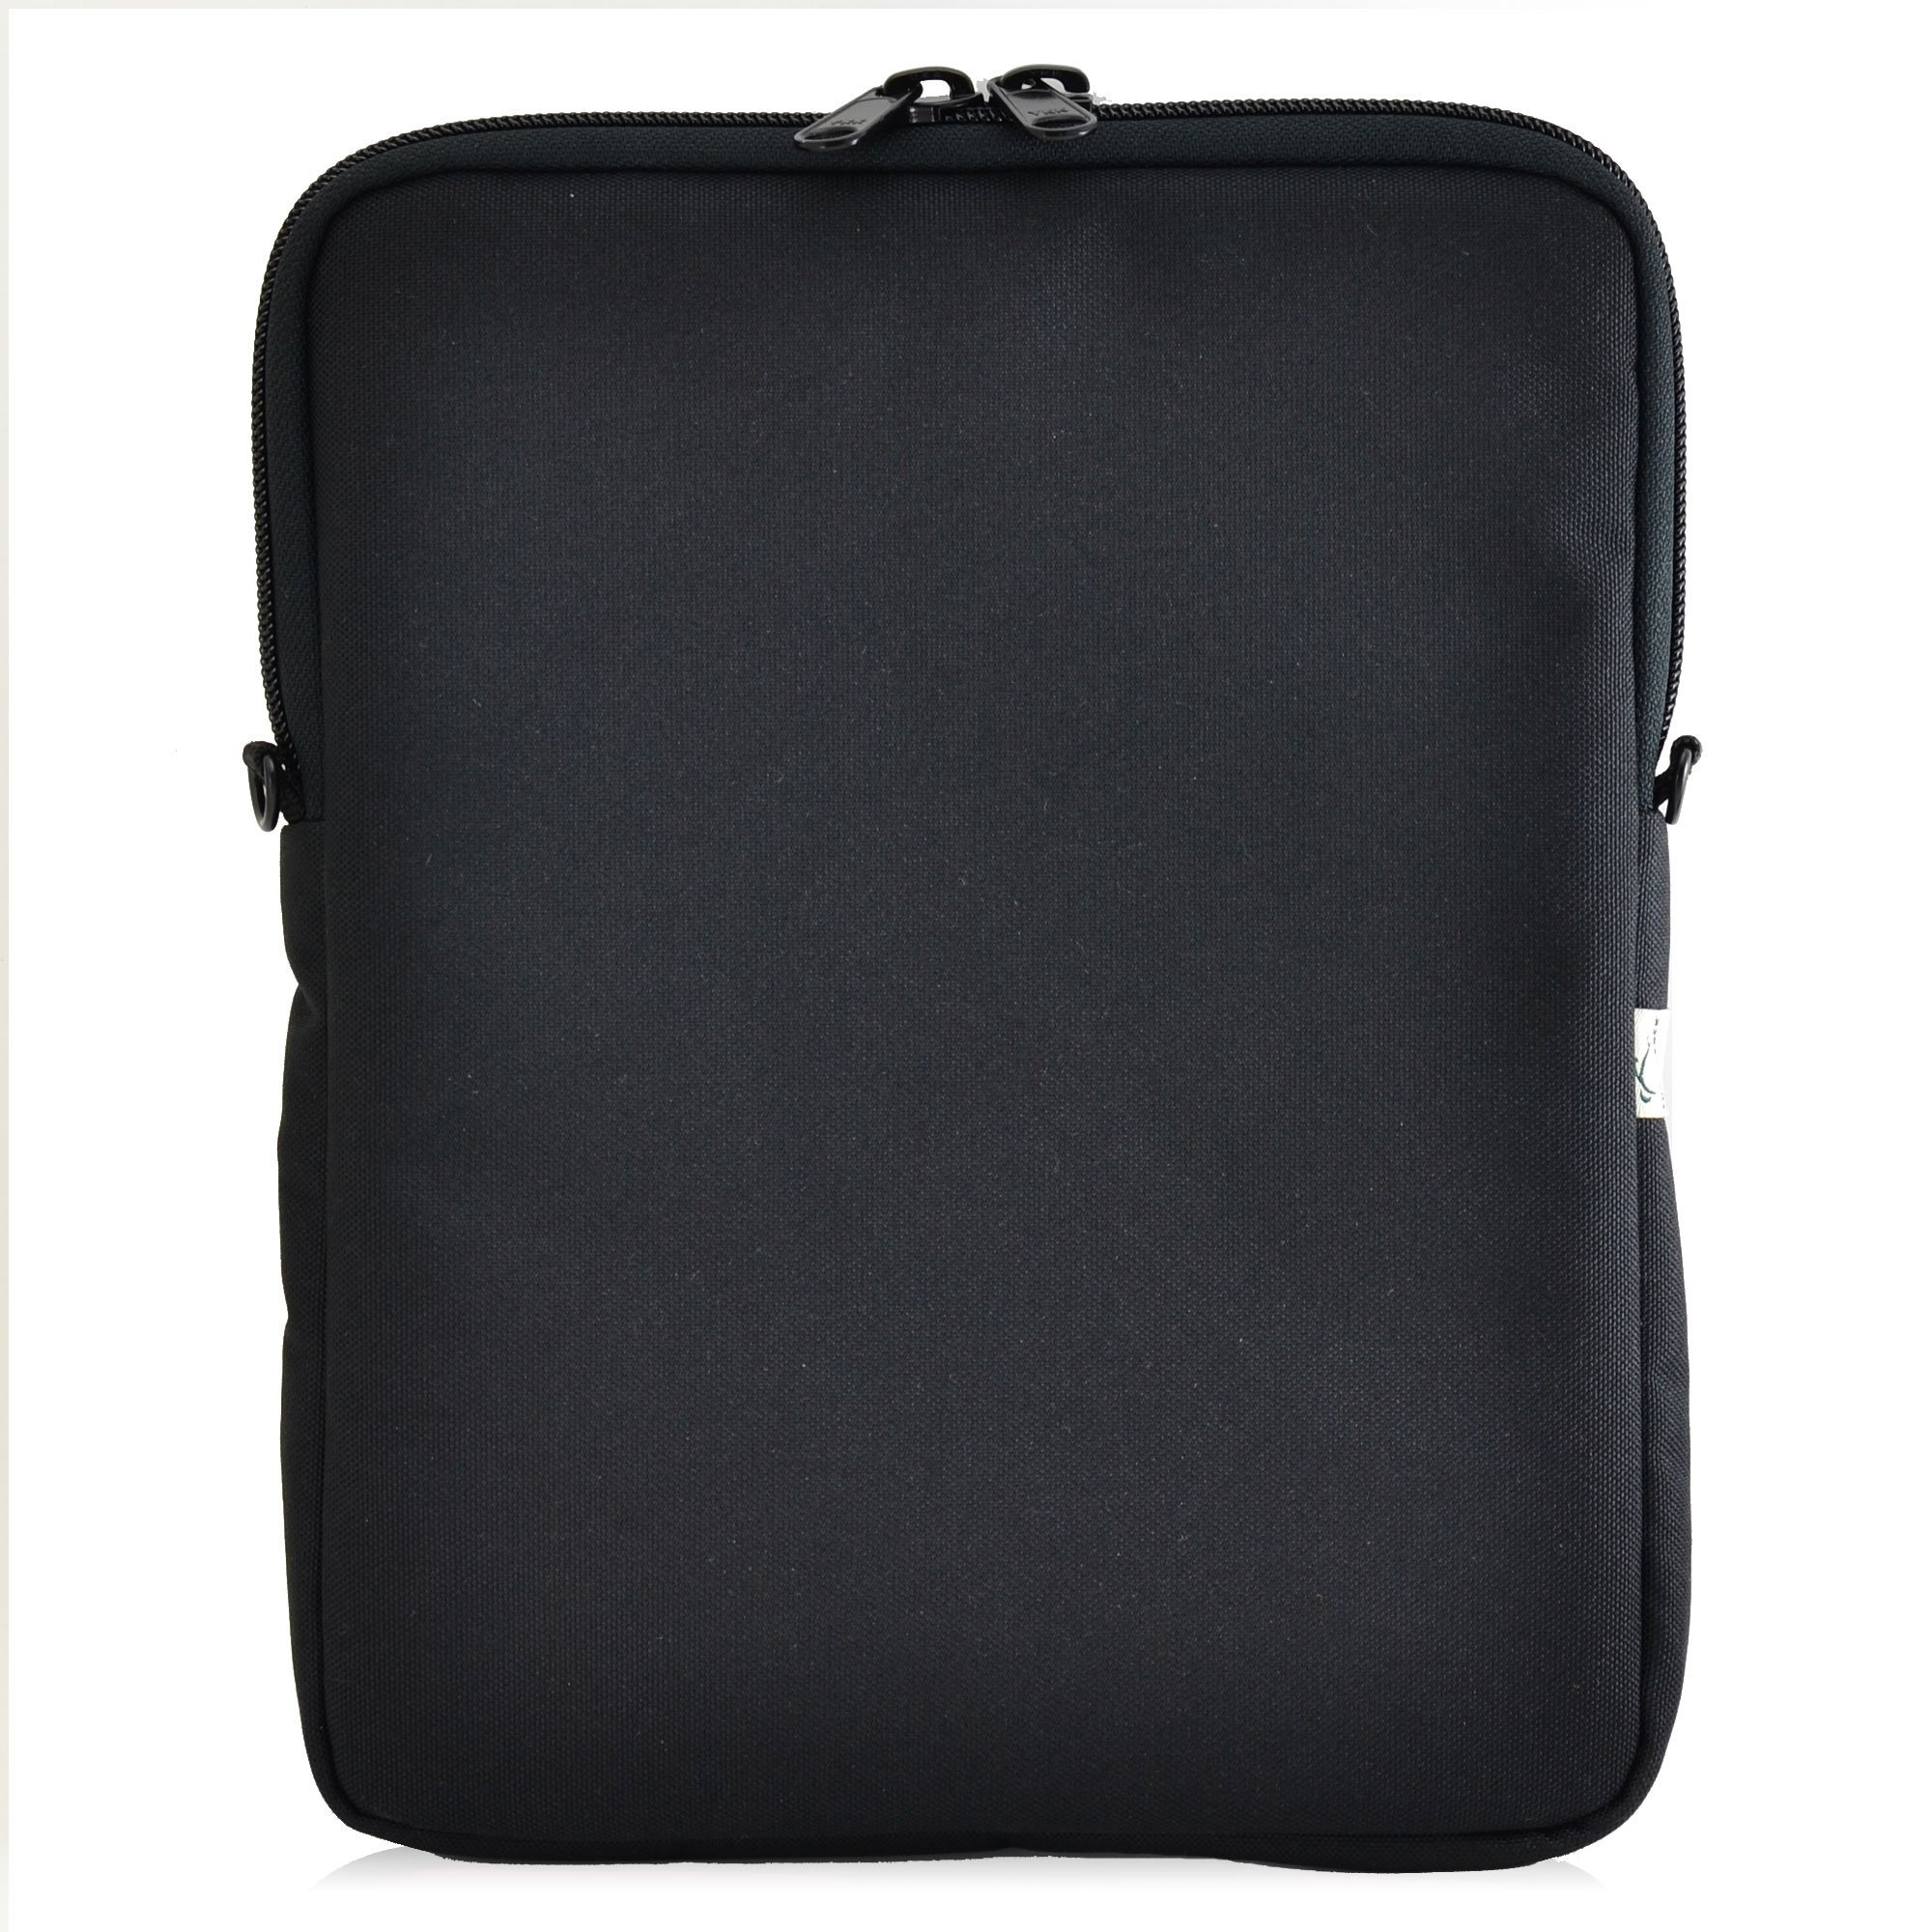 """Turtleback Essential Gear for iPad Pro 10.5"""" Tablet & Phone Pouch Carry Bag with Removable Shoulder Strap (Black Nylon), Made in USA"""